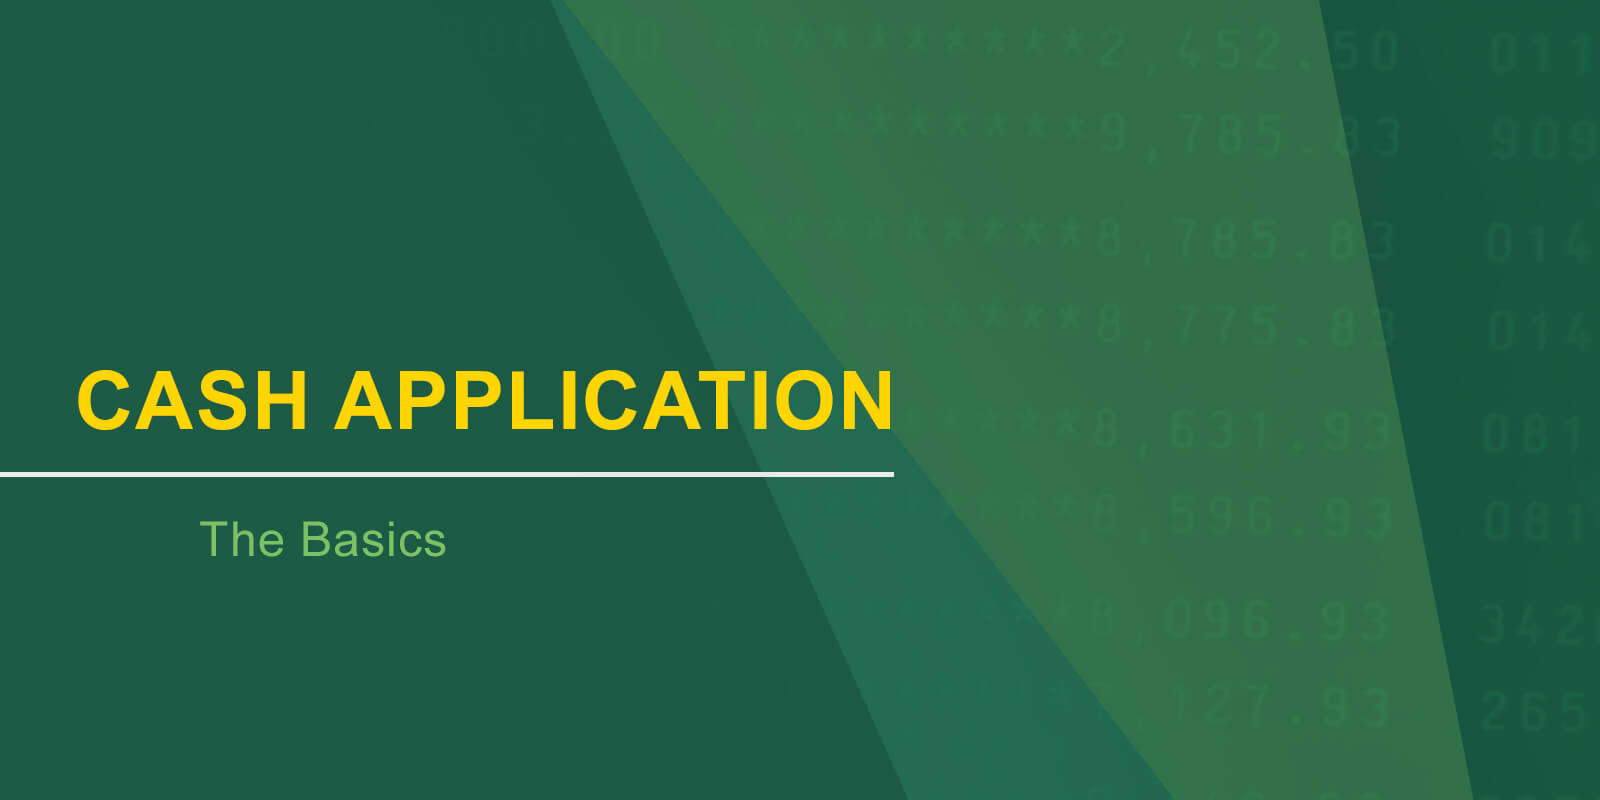 Basics to Cash Application Banner Image